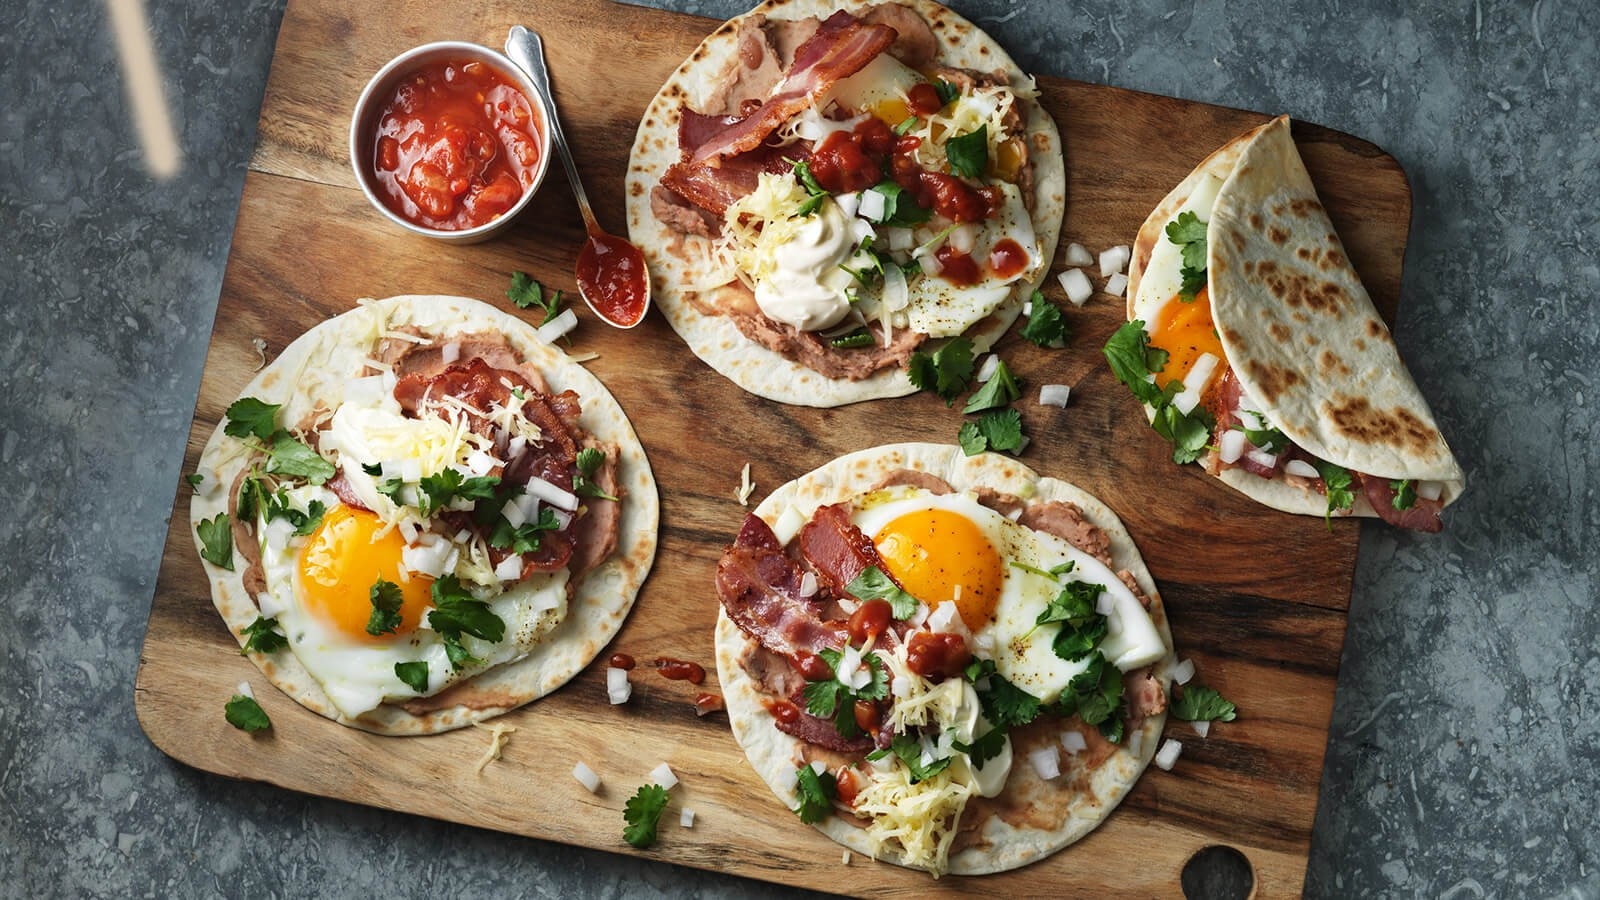 Brunch tacos with bacon and eggs